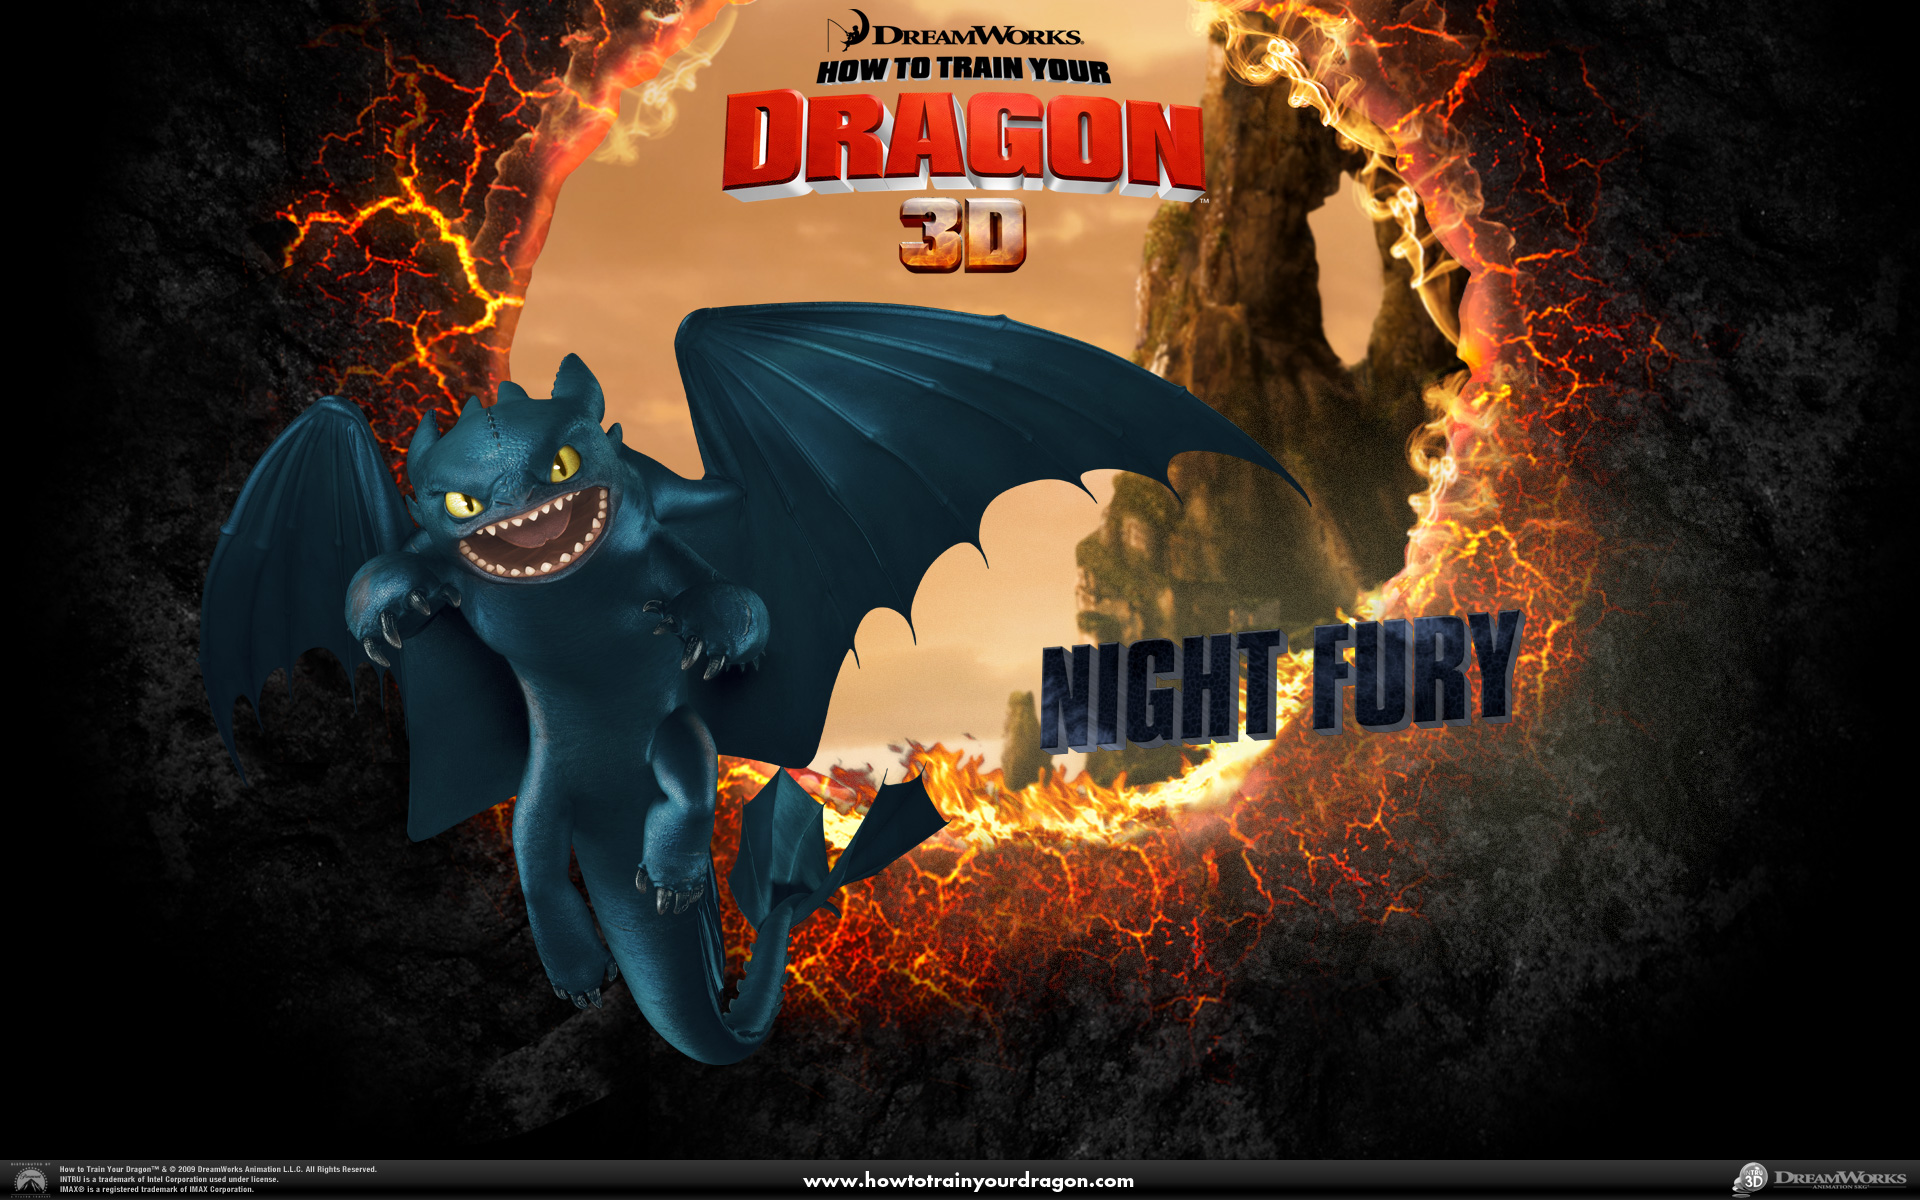 How to train your dragon full hd wallpaper and background - How to train your dragon hd download ...